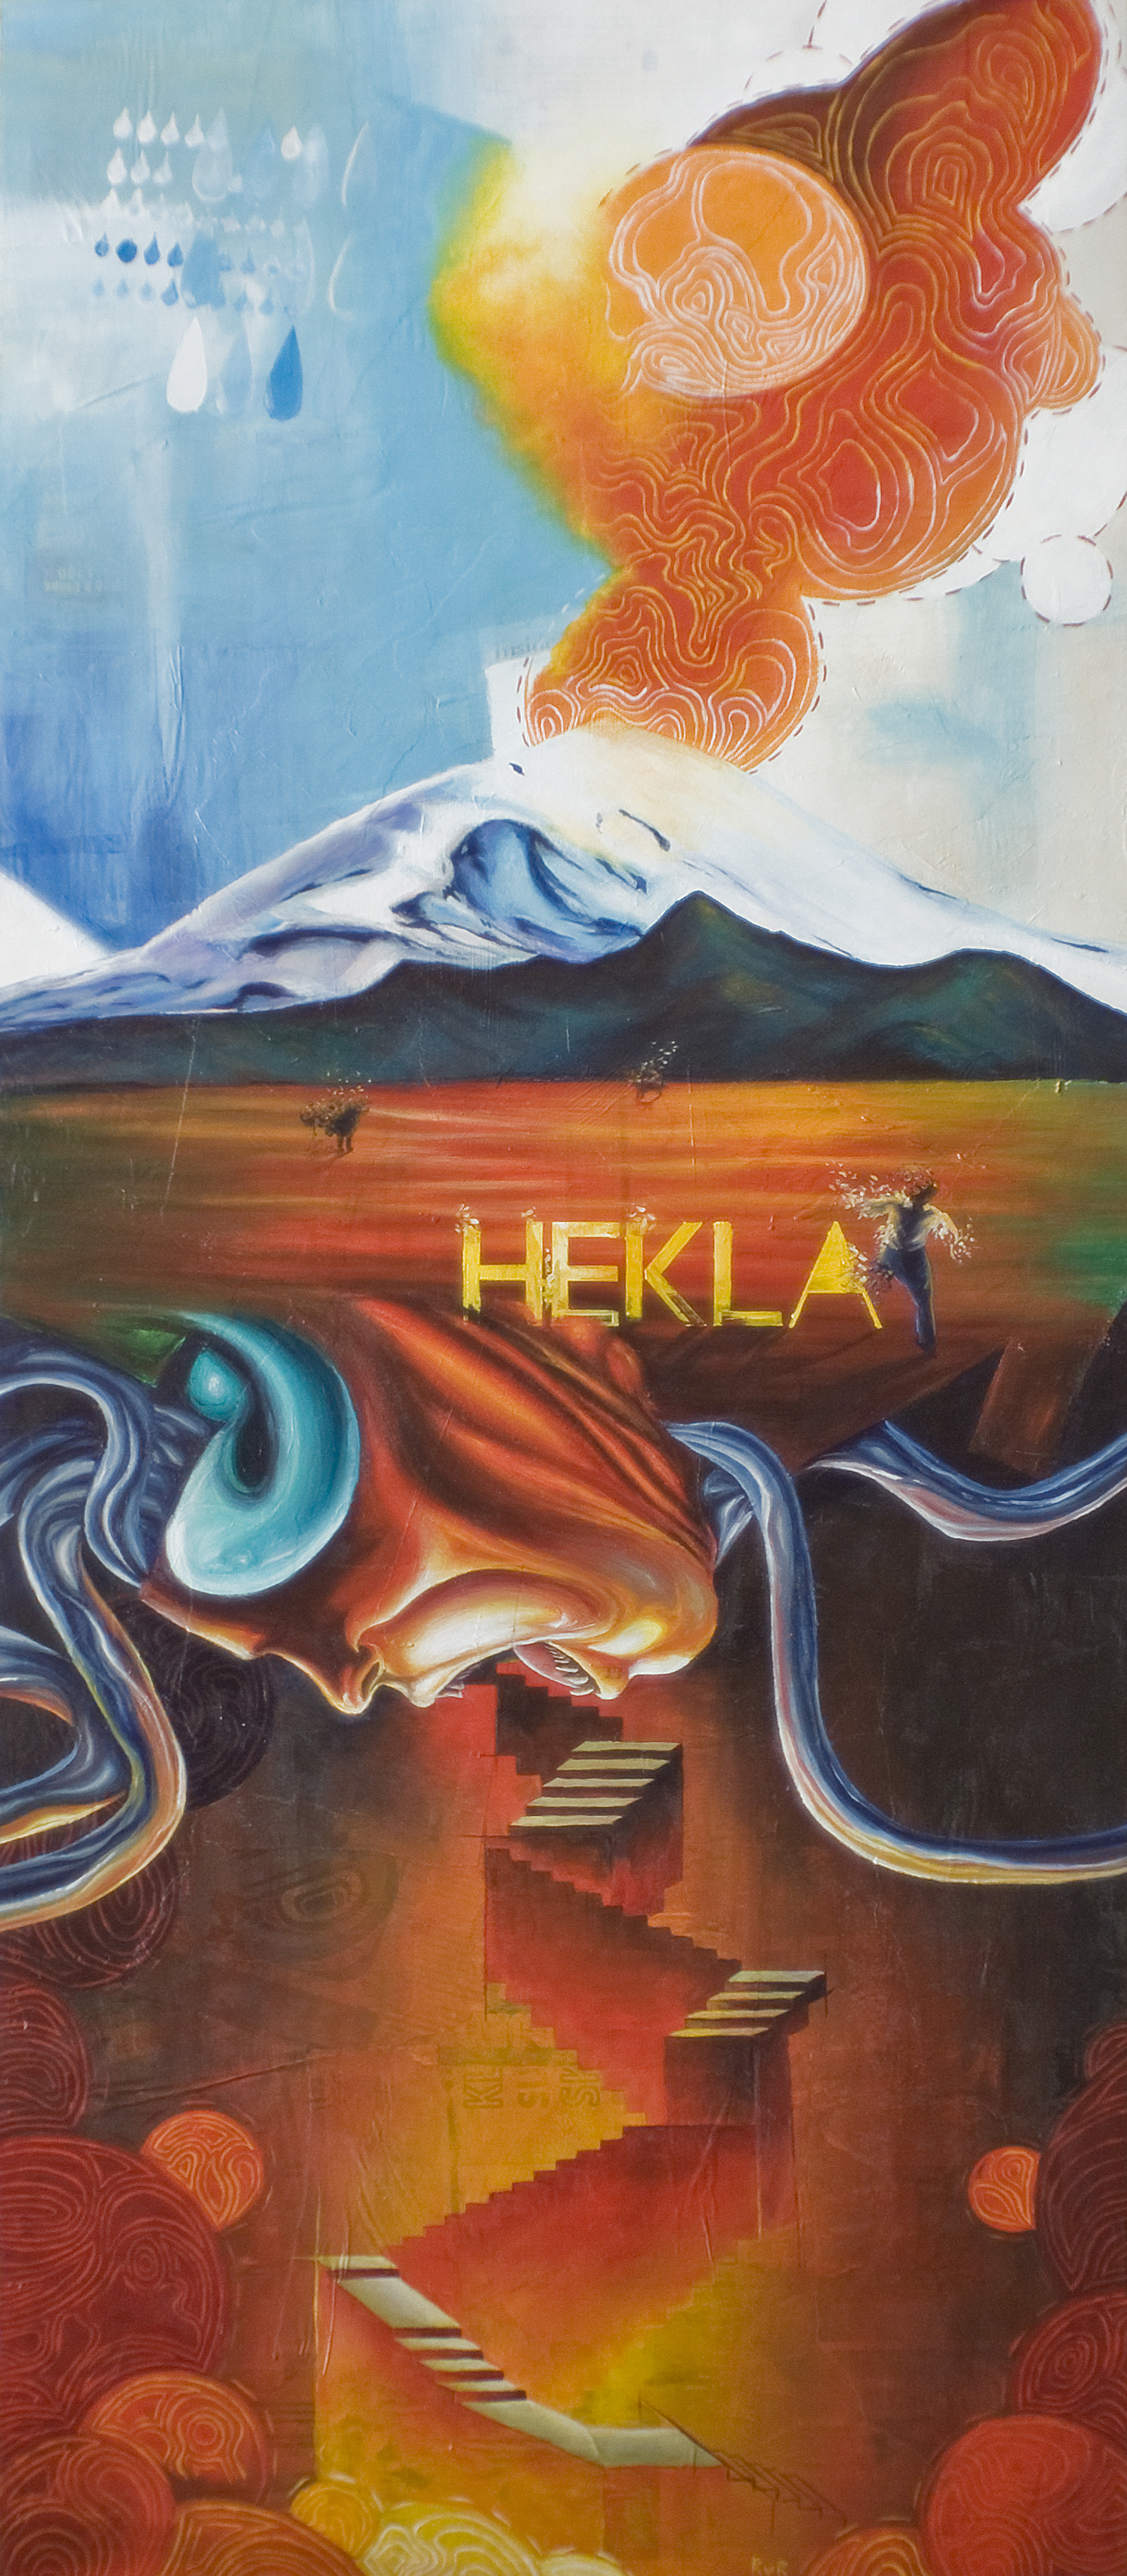 "HEKLA 19.5""x47"". ACRYLIC PAINT & PAPER COLLAGE ON WOOD (SOLD)"